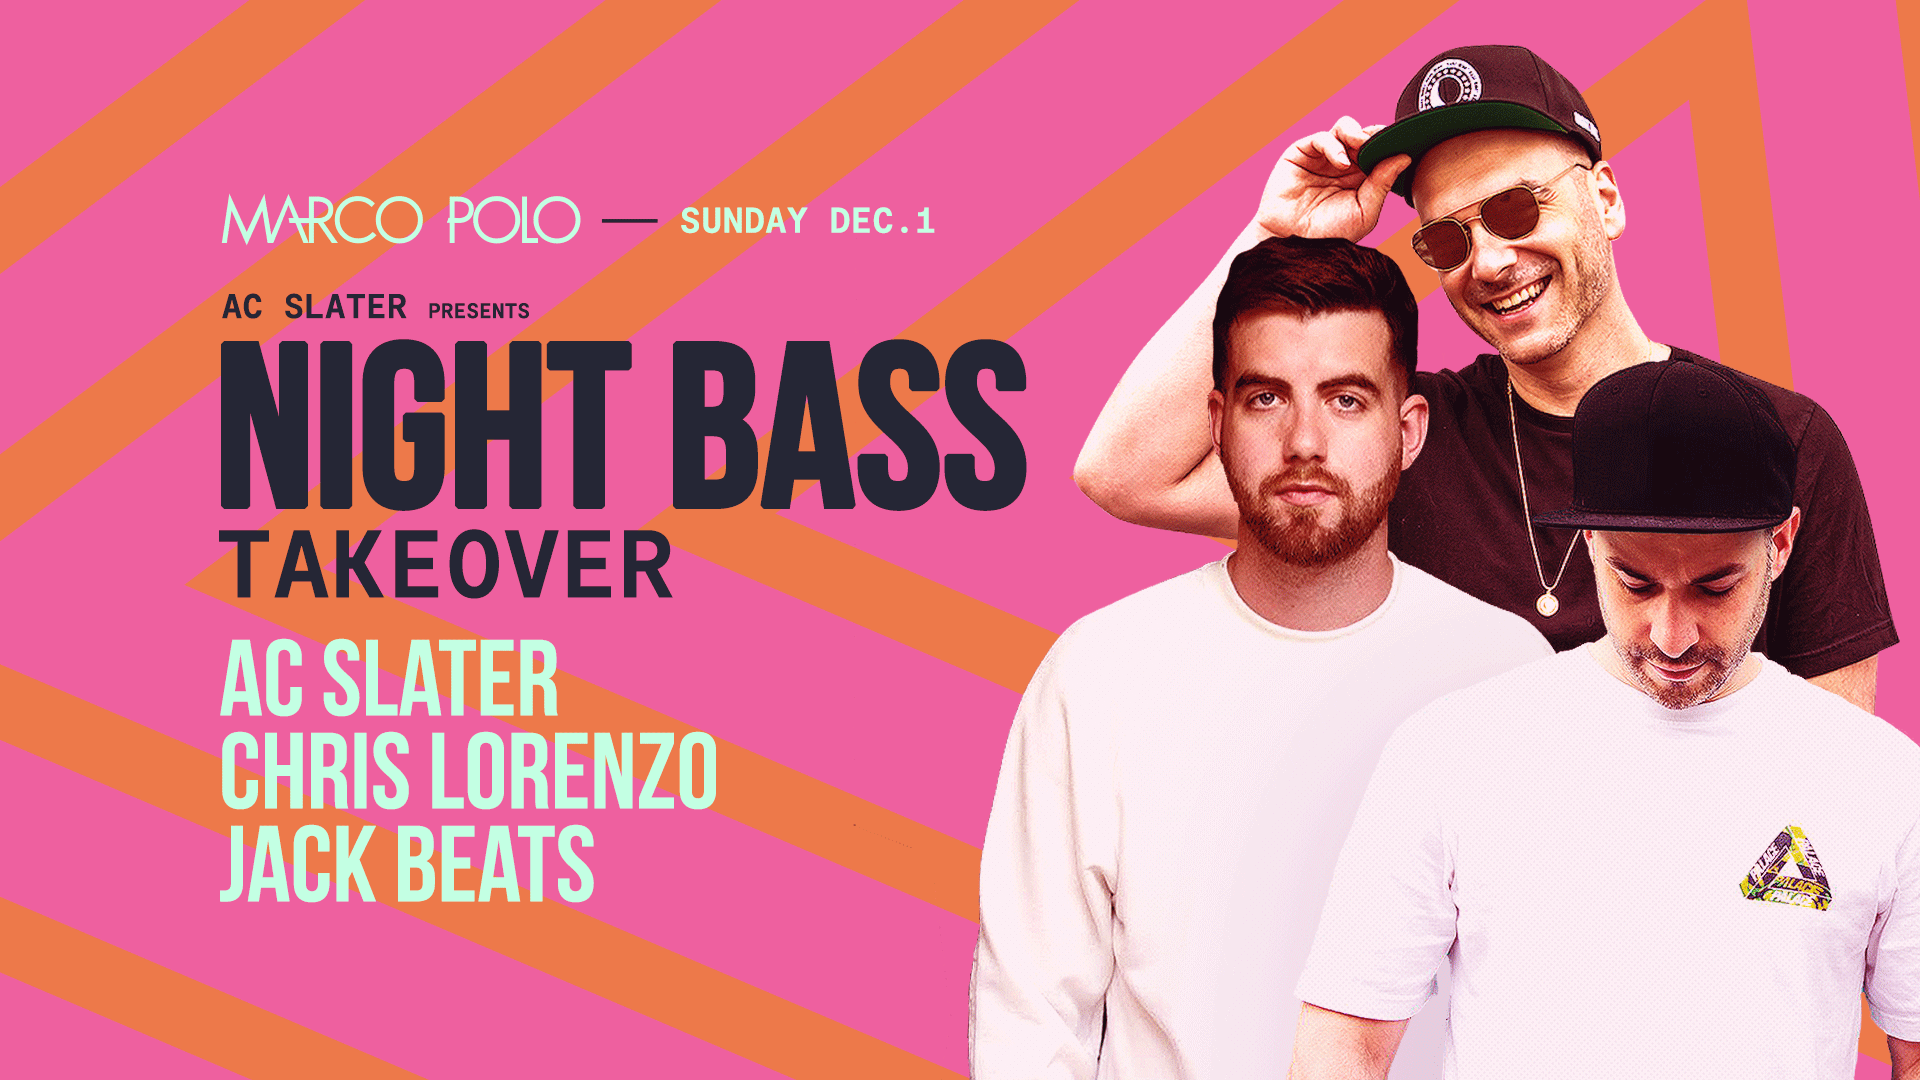 Tickets for Marco Polo | Night Bass Takeover in Sydney from Merivale